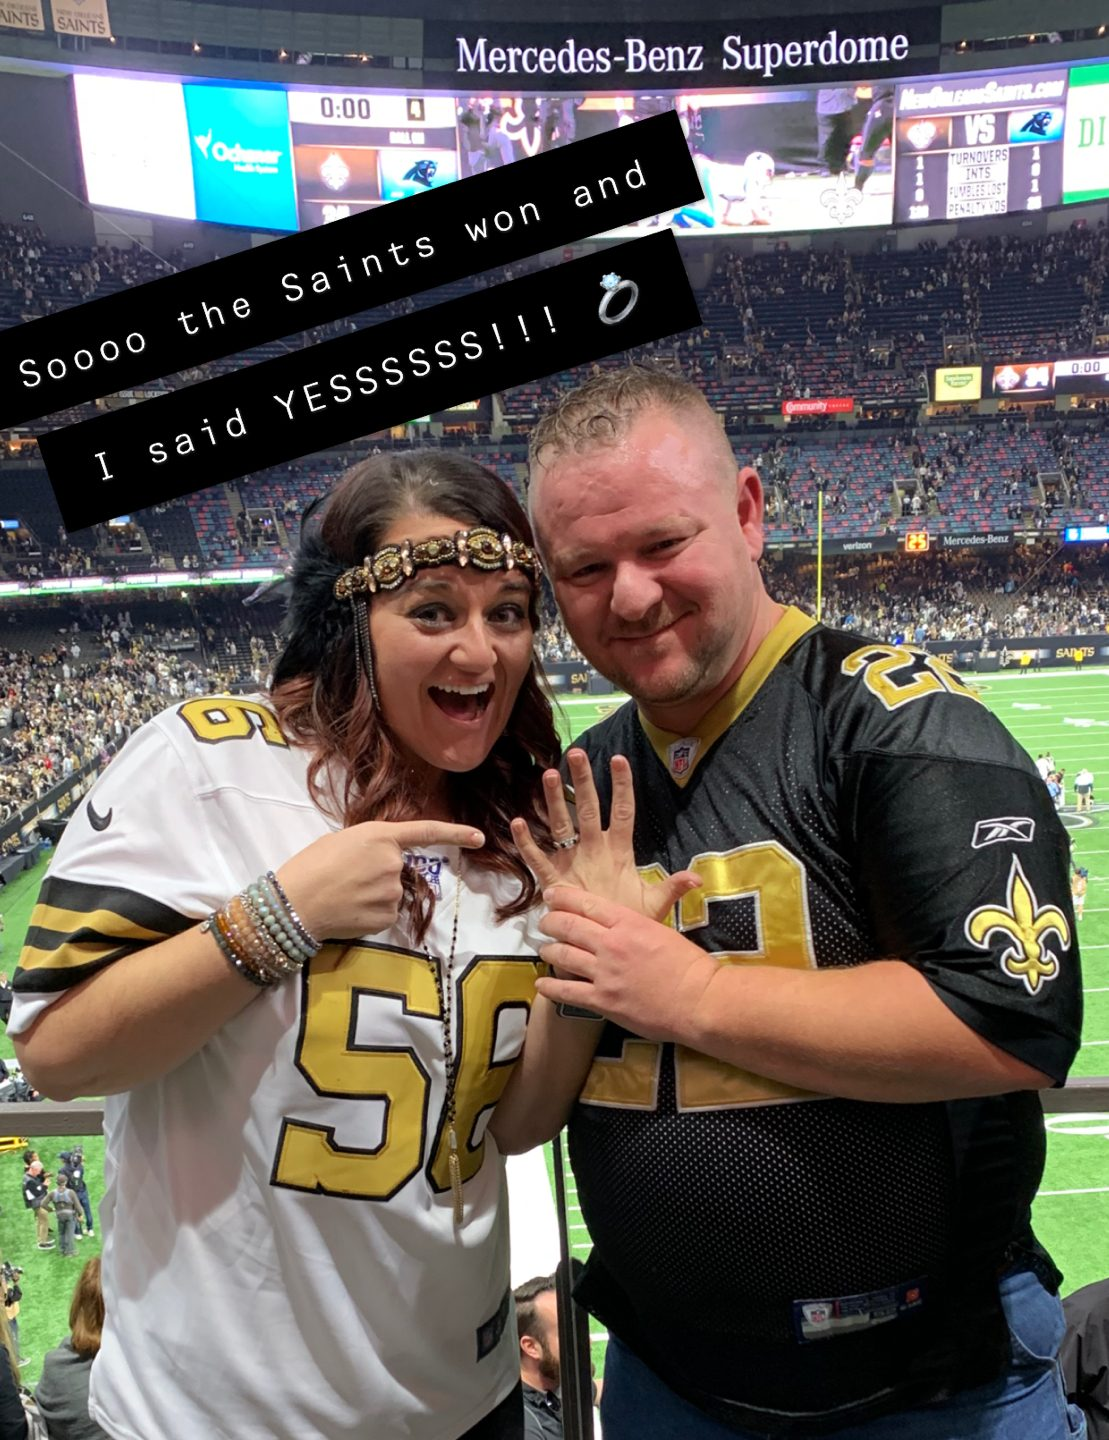 Marriage Proposal Ideas in Mercedes-Benz Super Dome, New Orleans